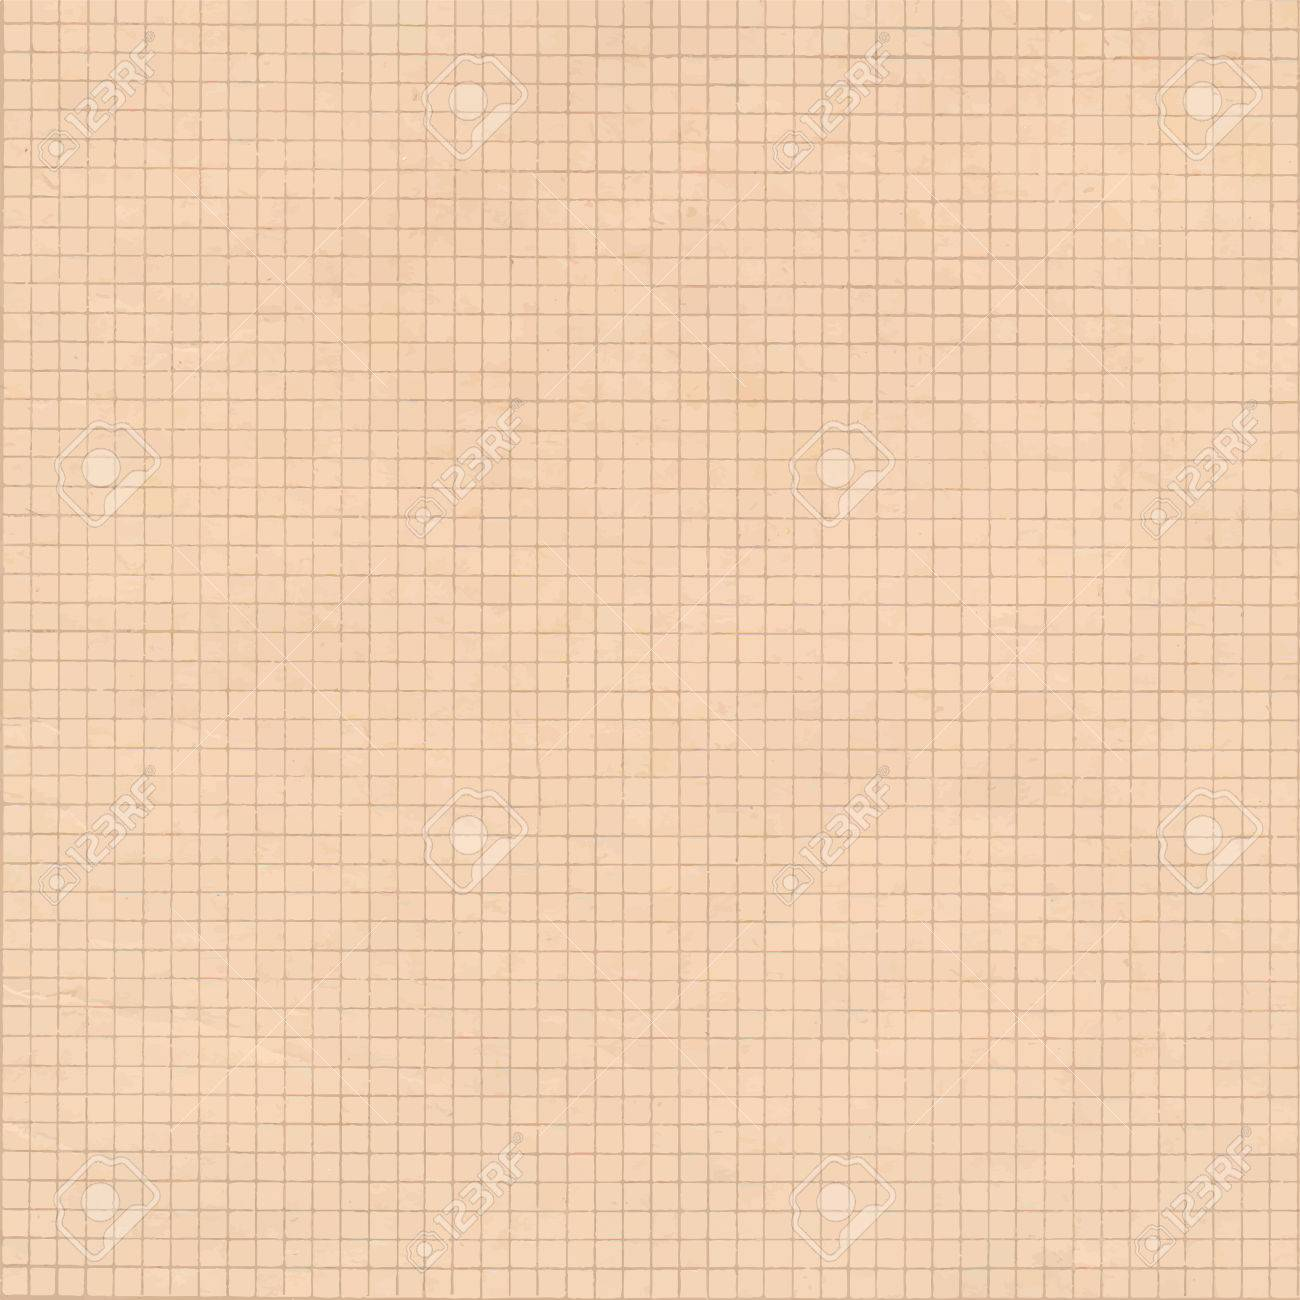 old sepia graph paper square grid background royalty free cliparts